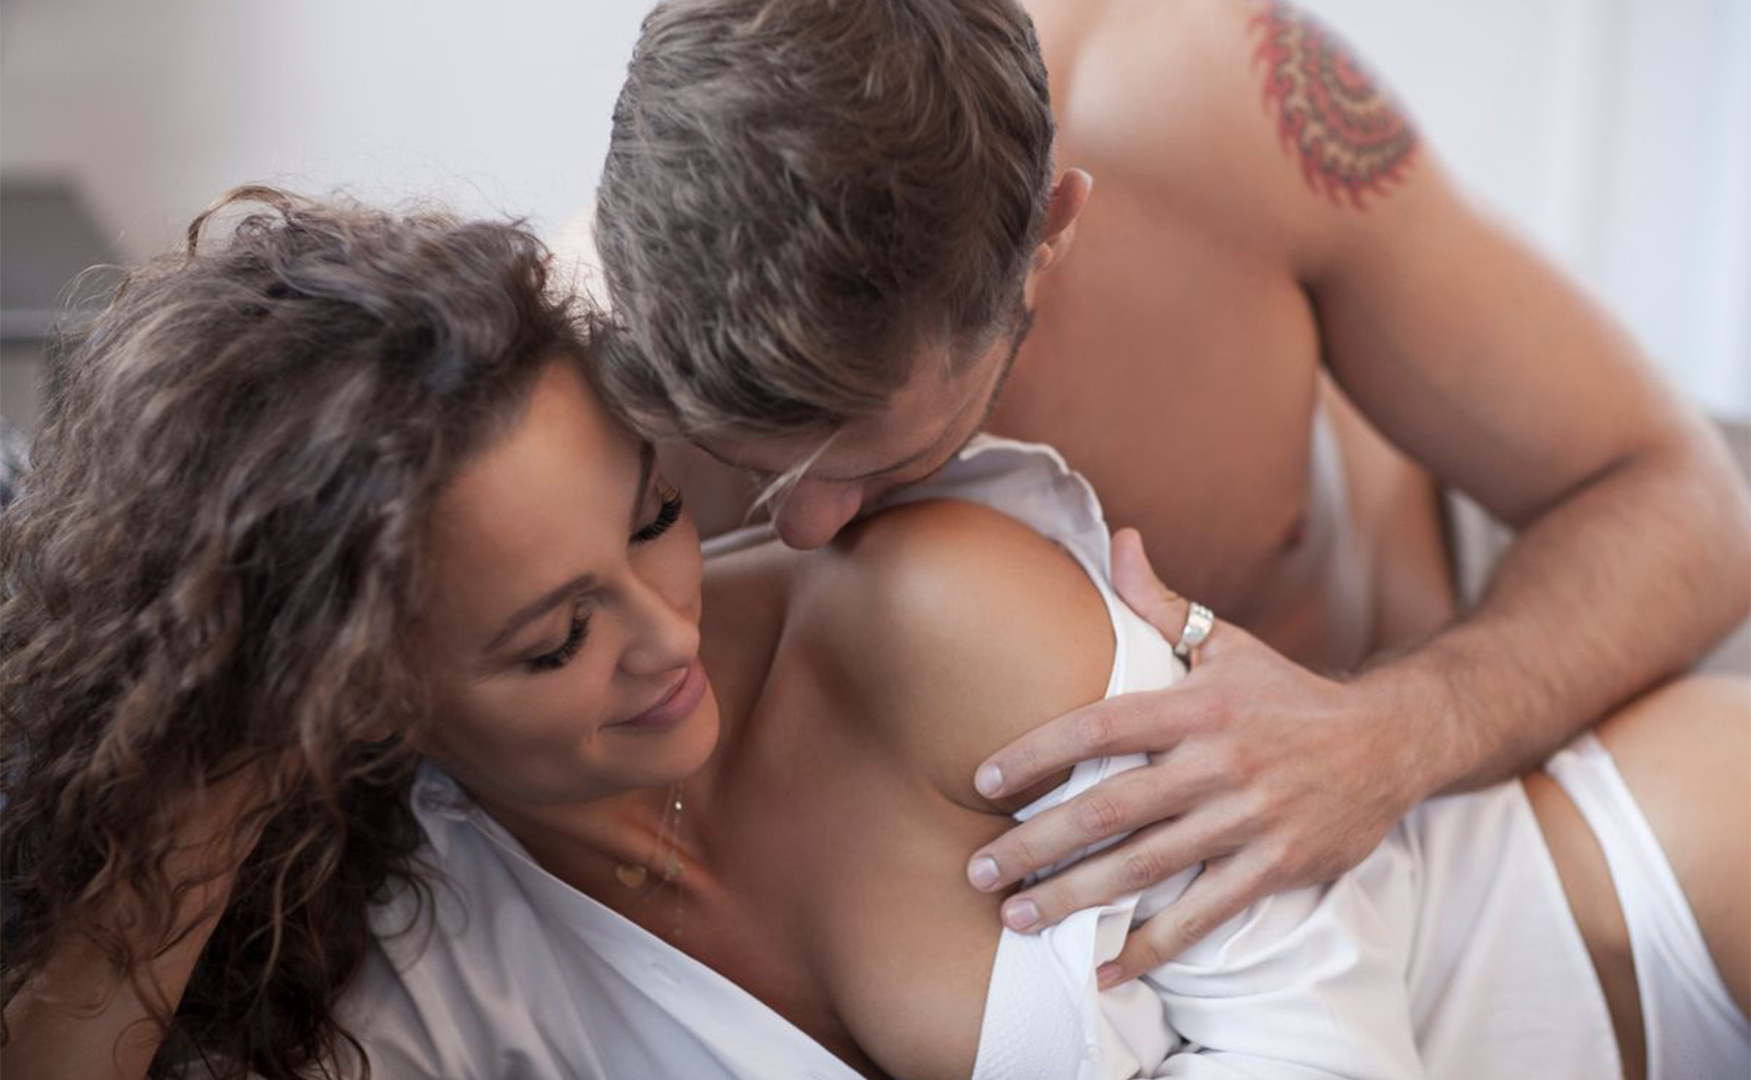 """""""Vanilla Sex"""" Gets a Bad Wrap: Here's Why It's Actually Great"""